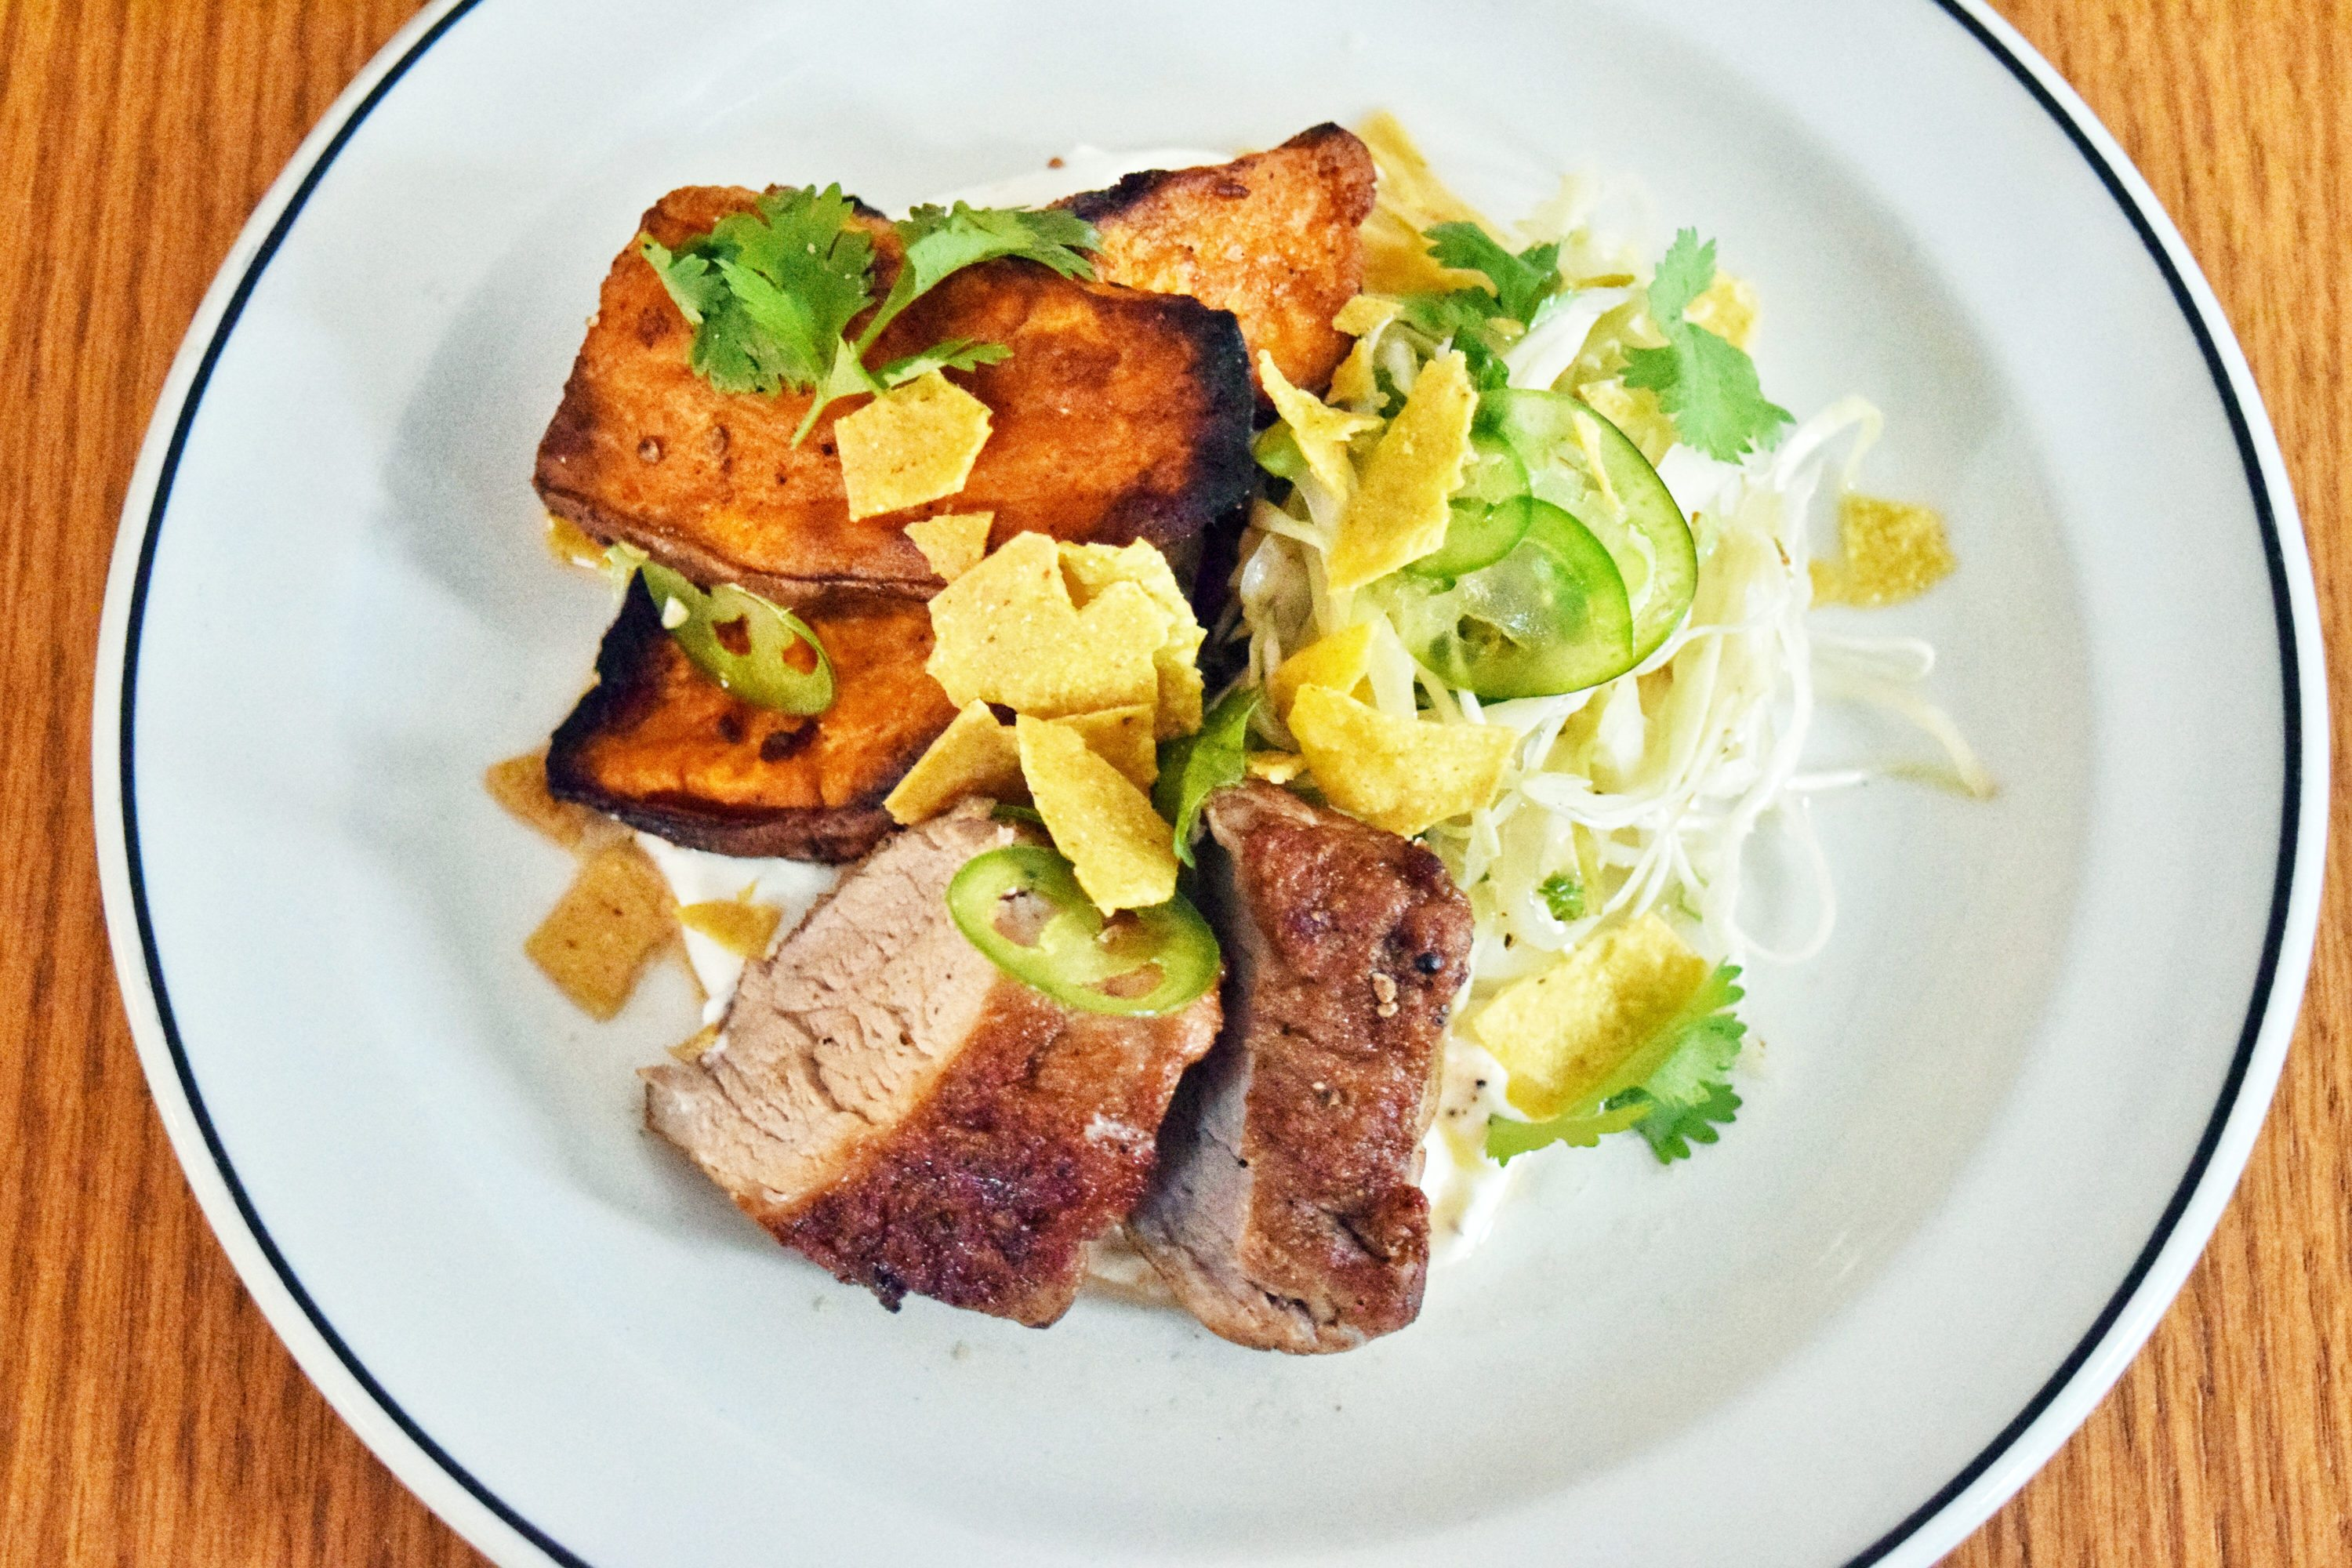 The Third's compact menu includes a pork tenderloin dish served with paprika cabbage slaw, sweet potatoes, sour cream, and cilantro